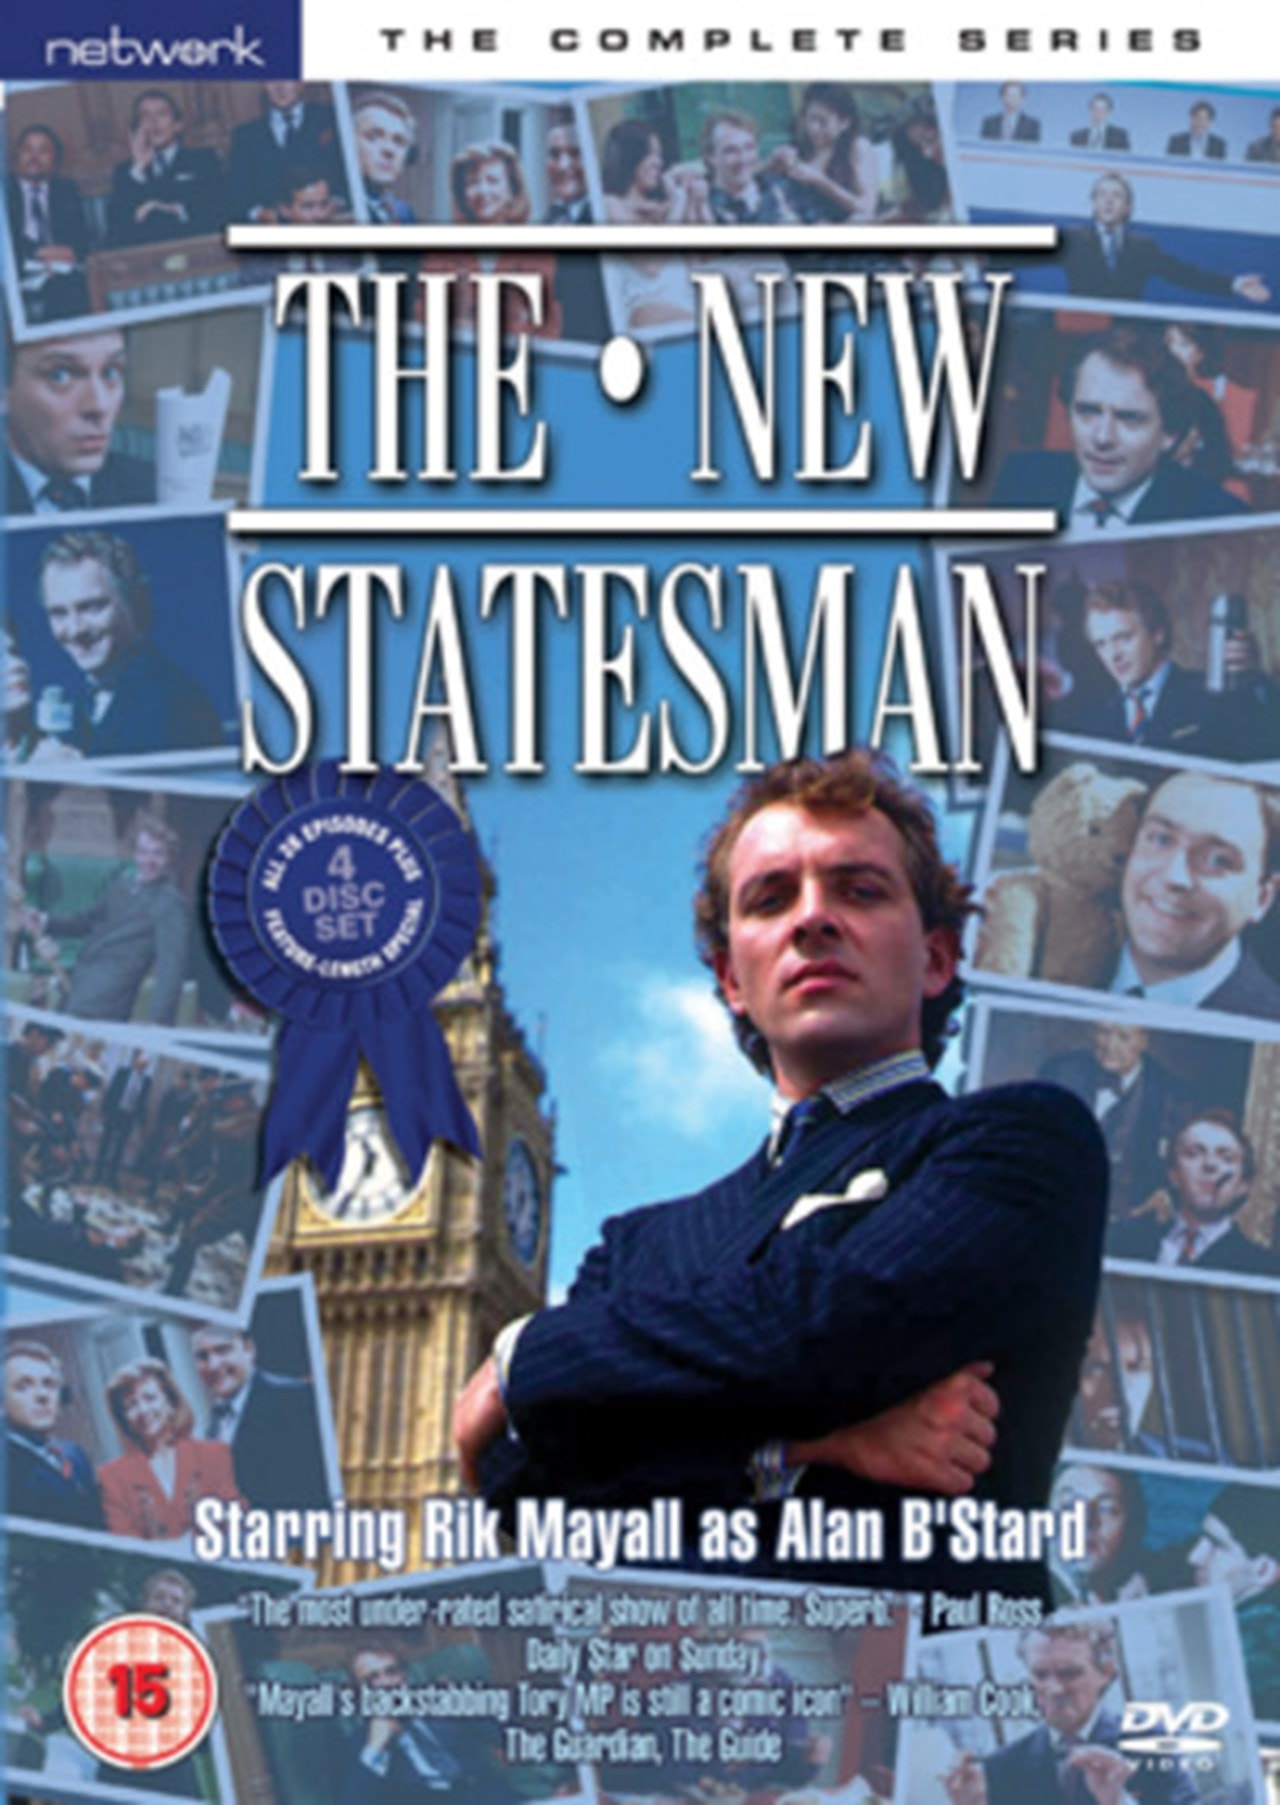 The New Statesman: The Complete Series - 1